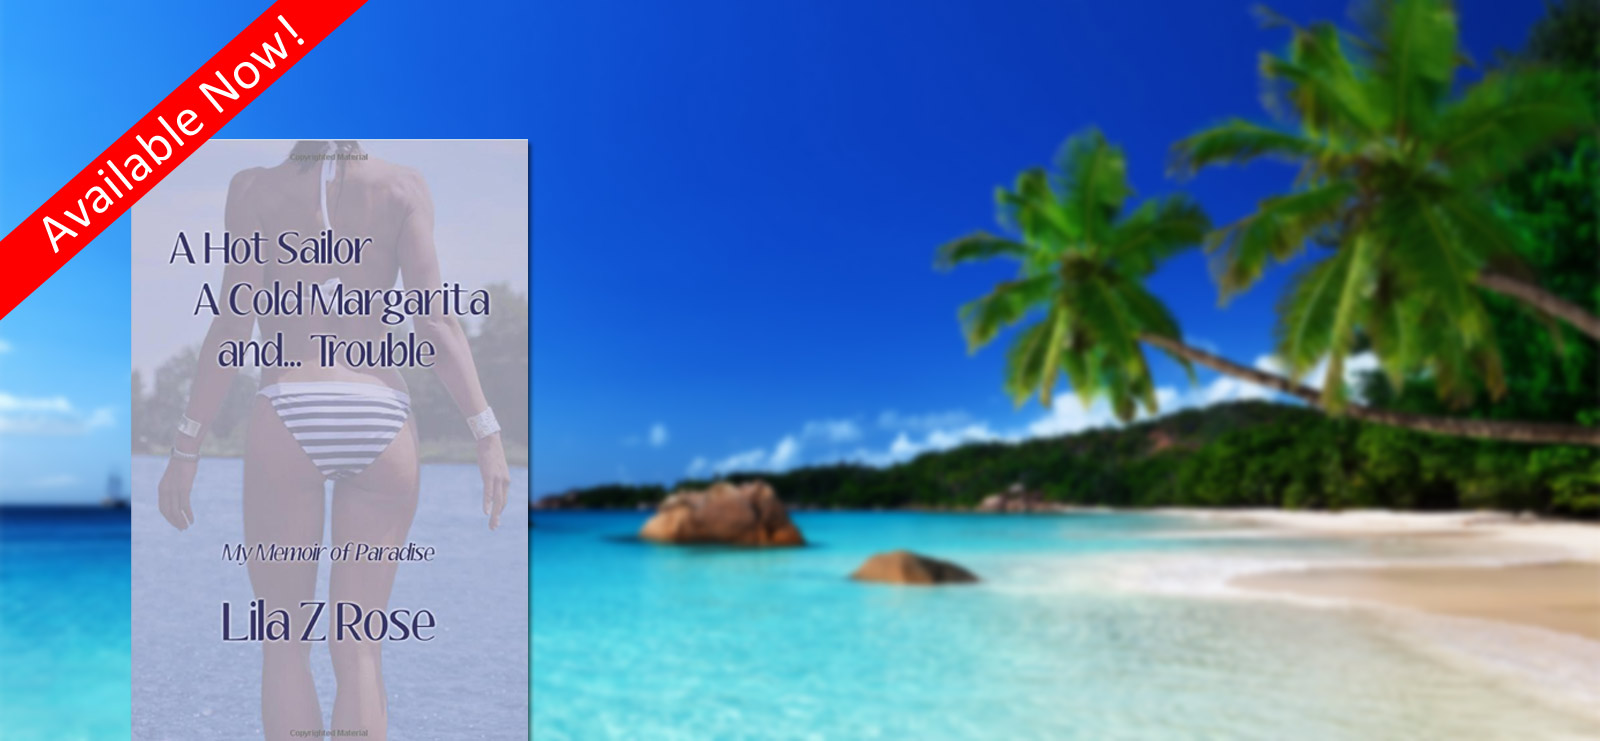 A Hot Sailor, A Cold Margarita, and... Trouble: My Memoir of Paradise